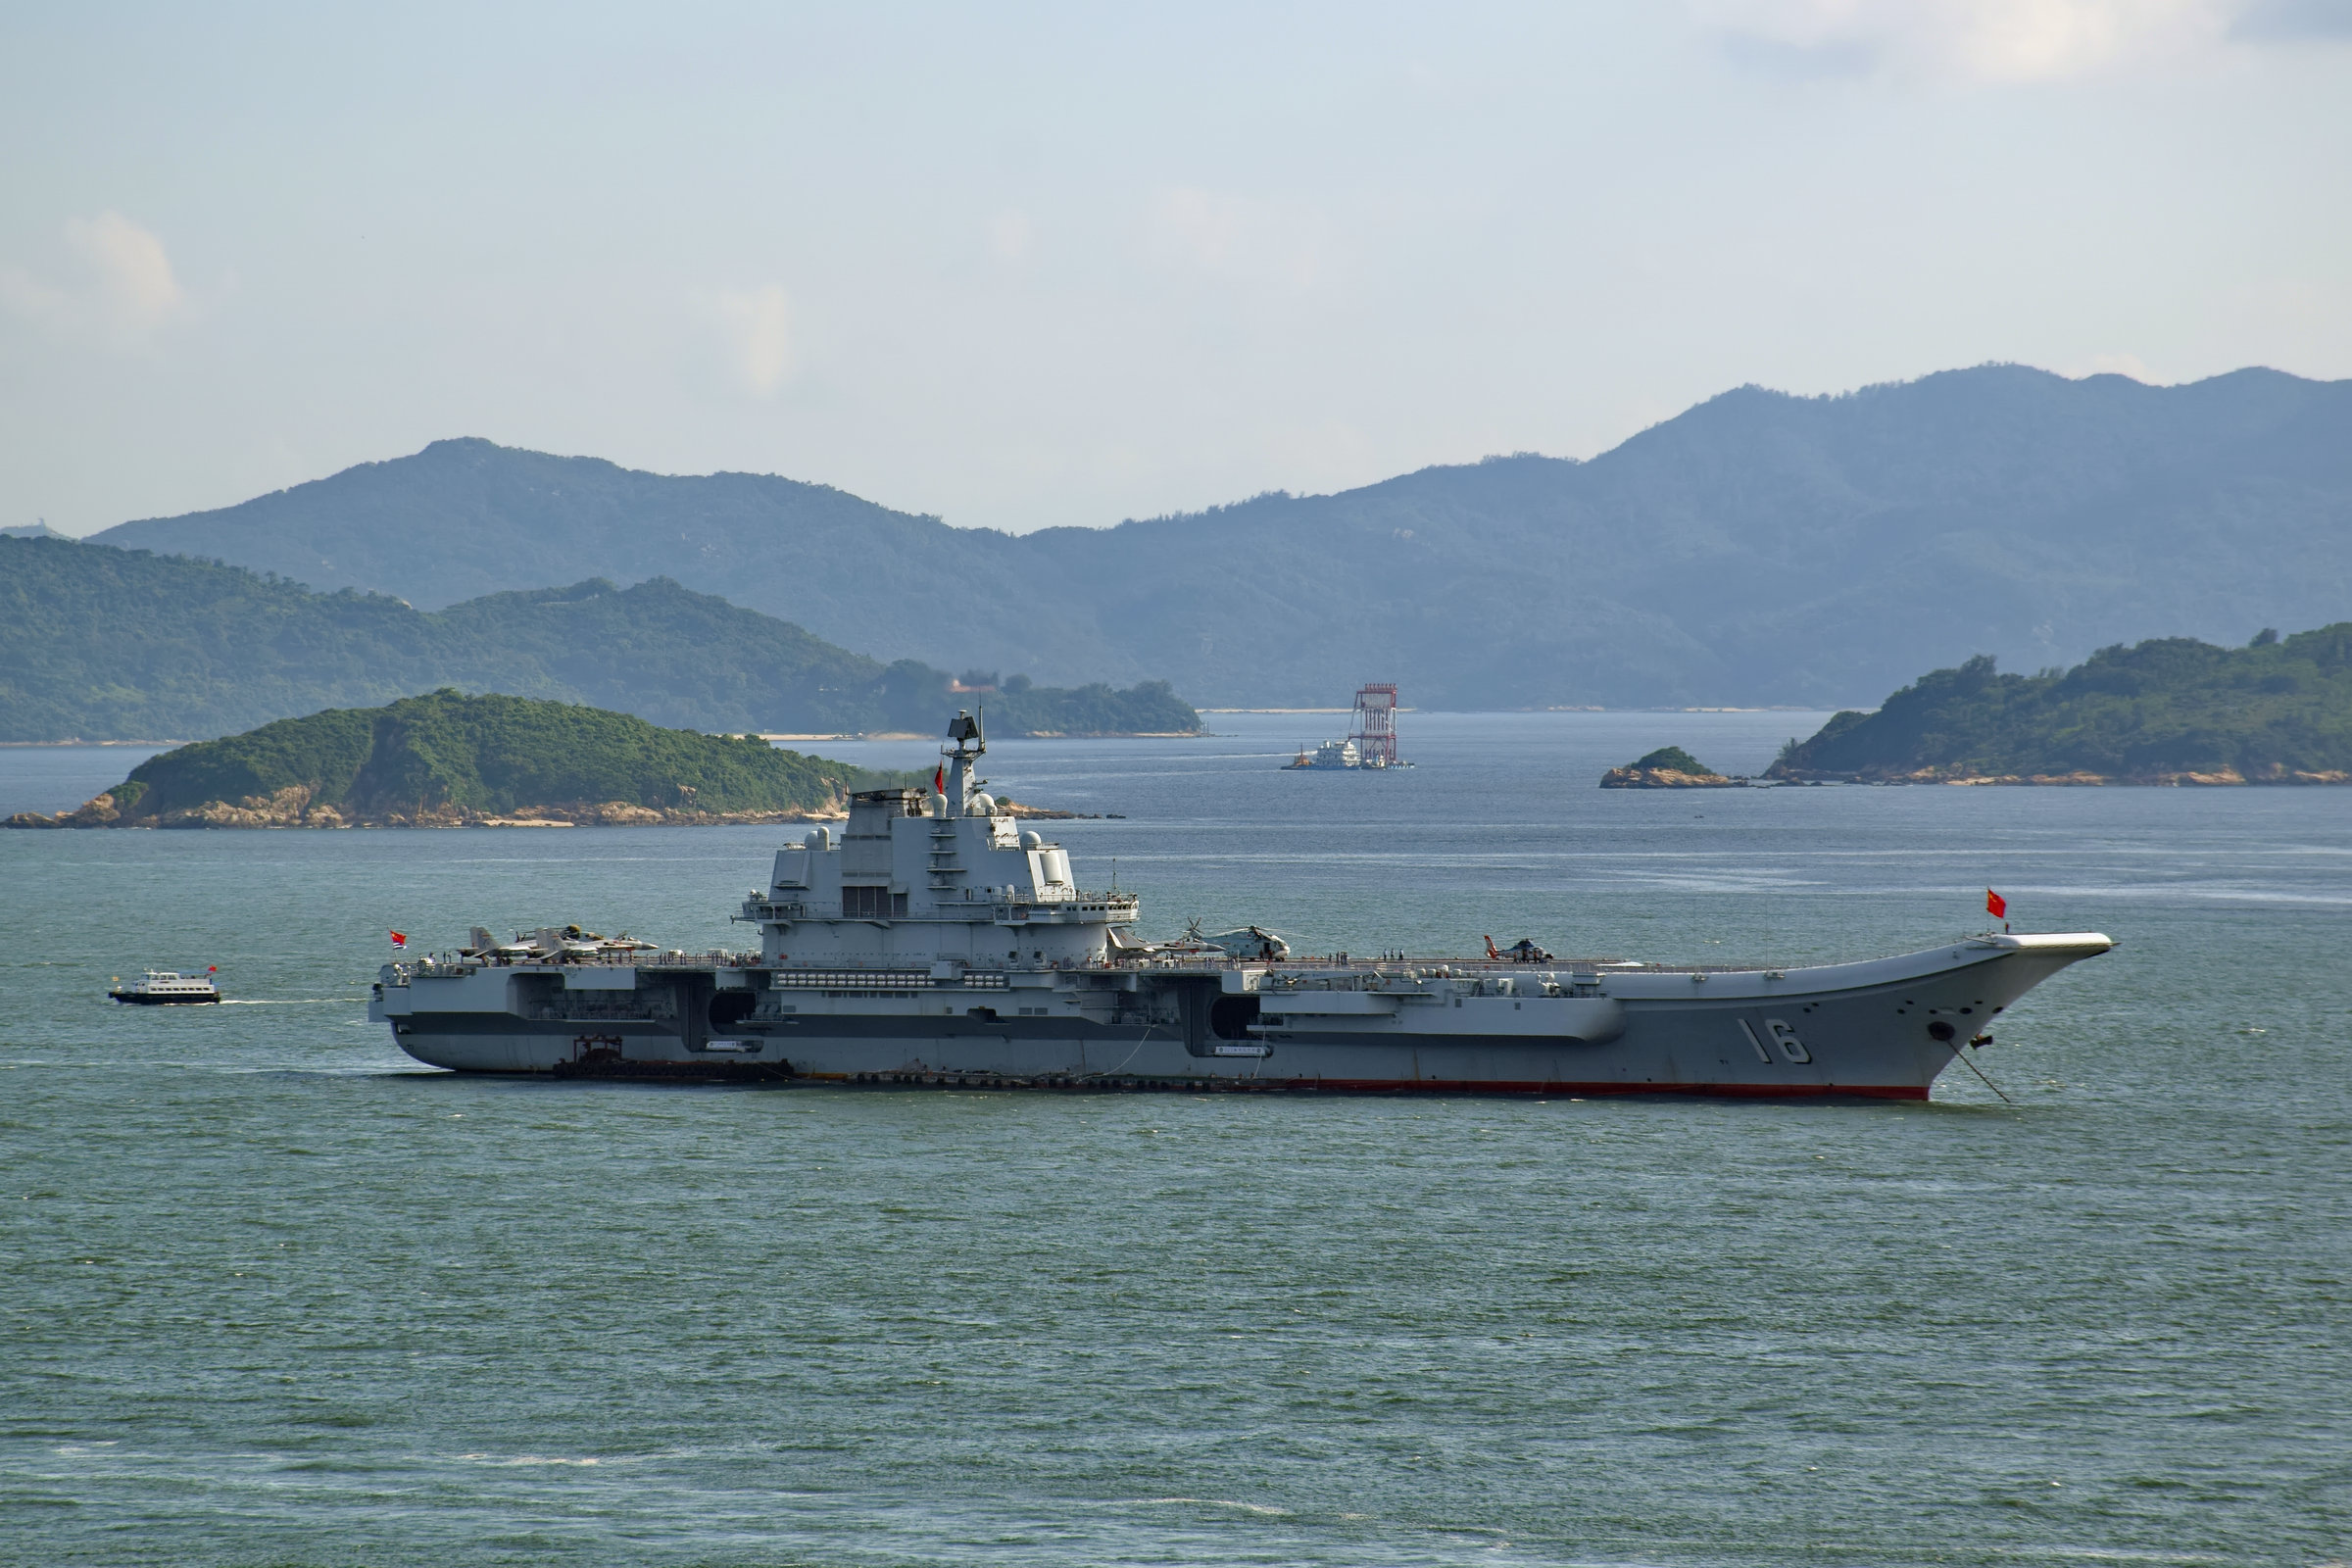 Aircraft_Carrier_Liaoning_CV-16